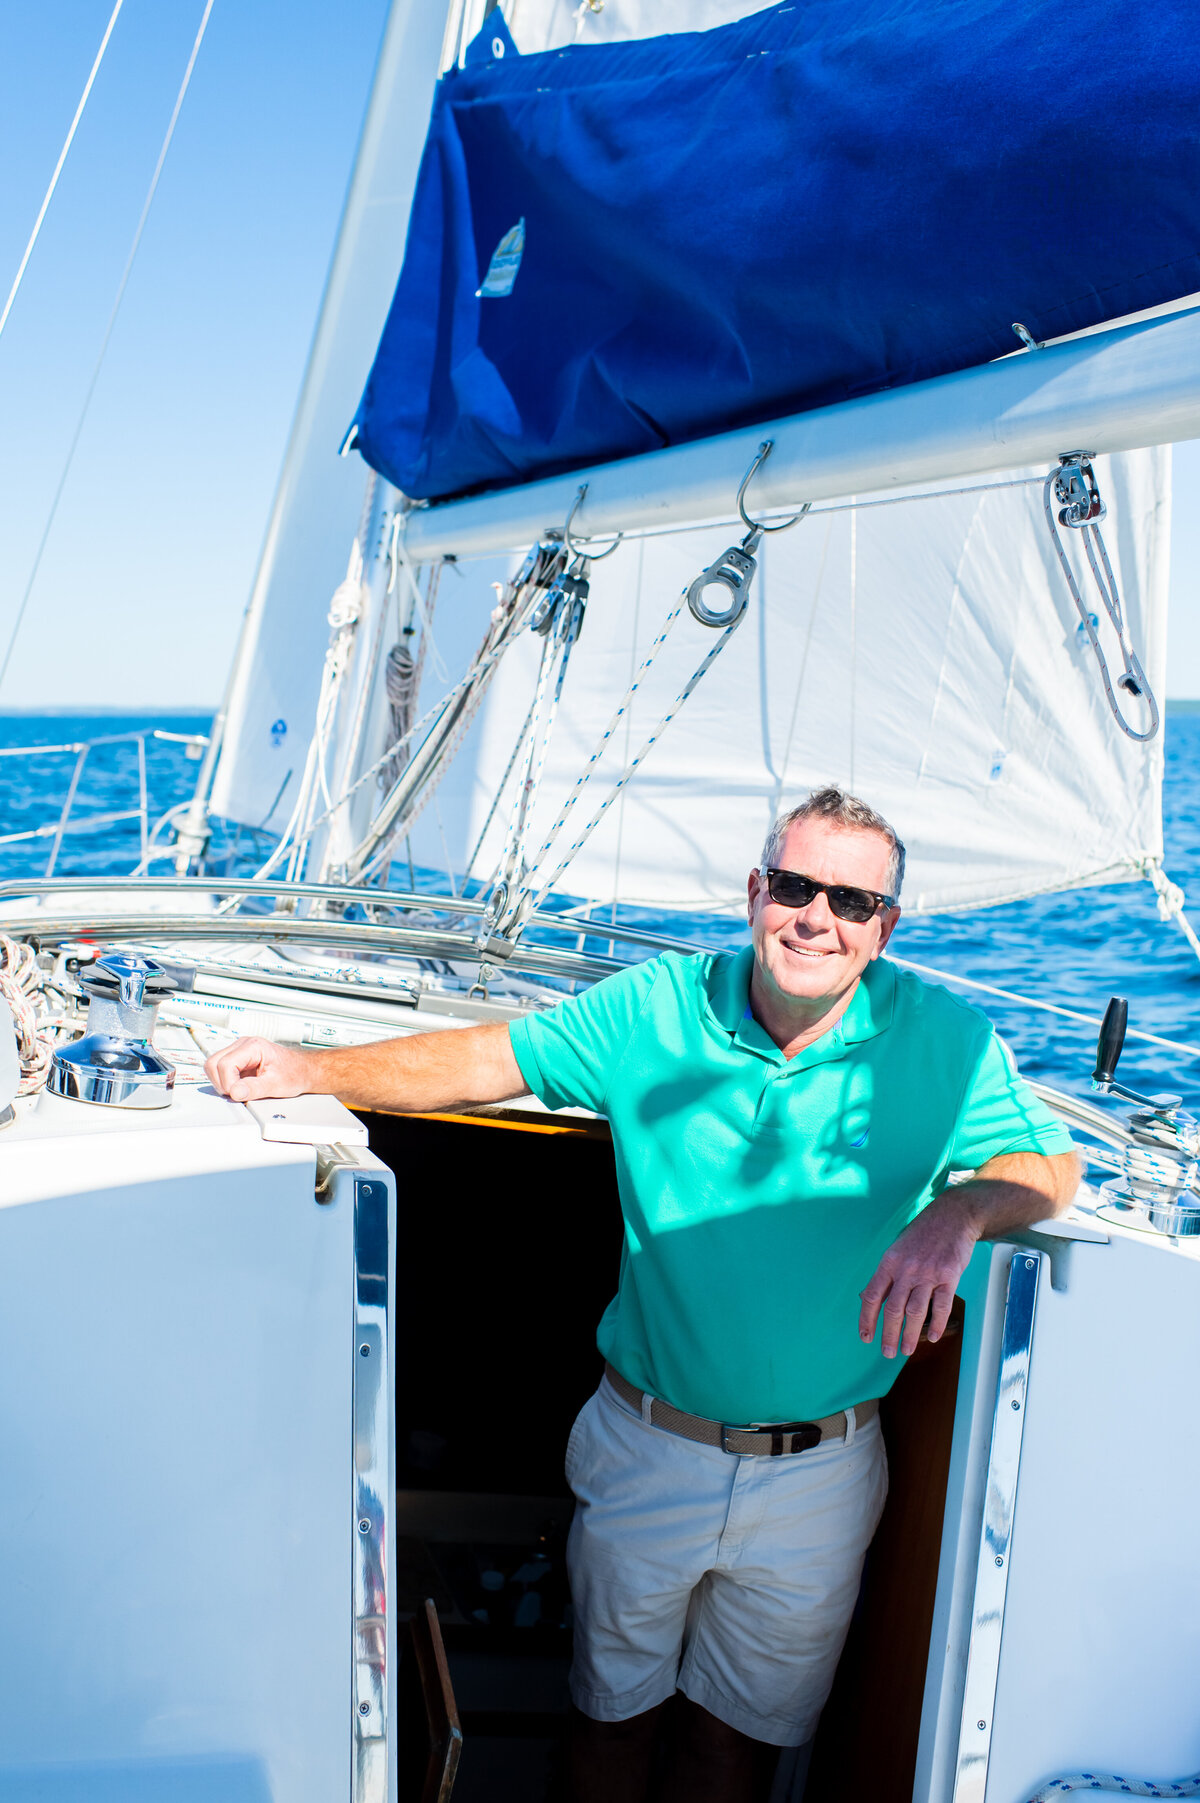 Florida-Suncoast-Sailing-Boating-Nautical-Photos-Colleen-Putman-Photography-Sarasota-Tampa-St-Pete-Sanibel-Captiva-23